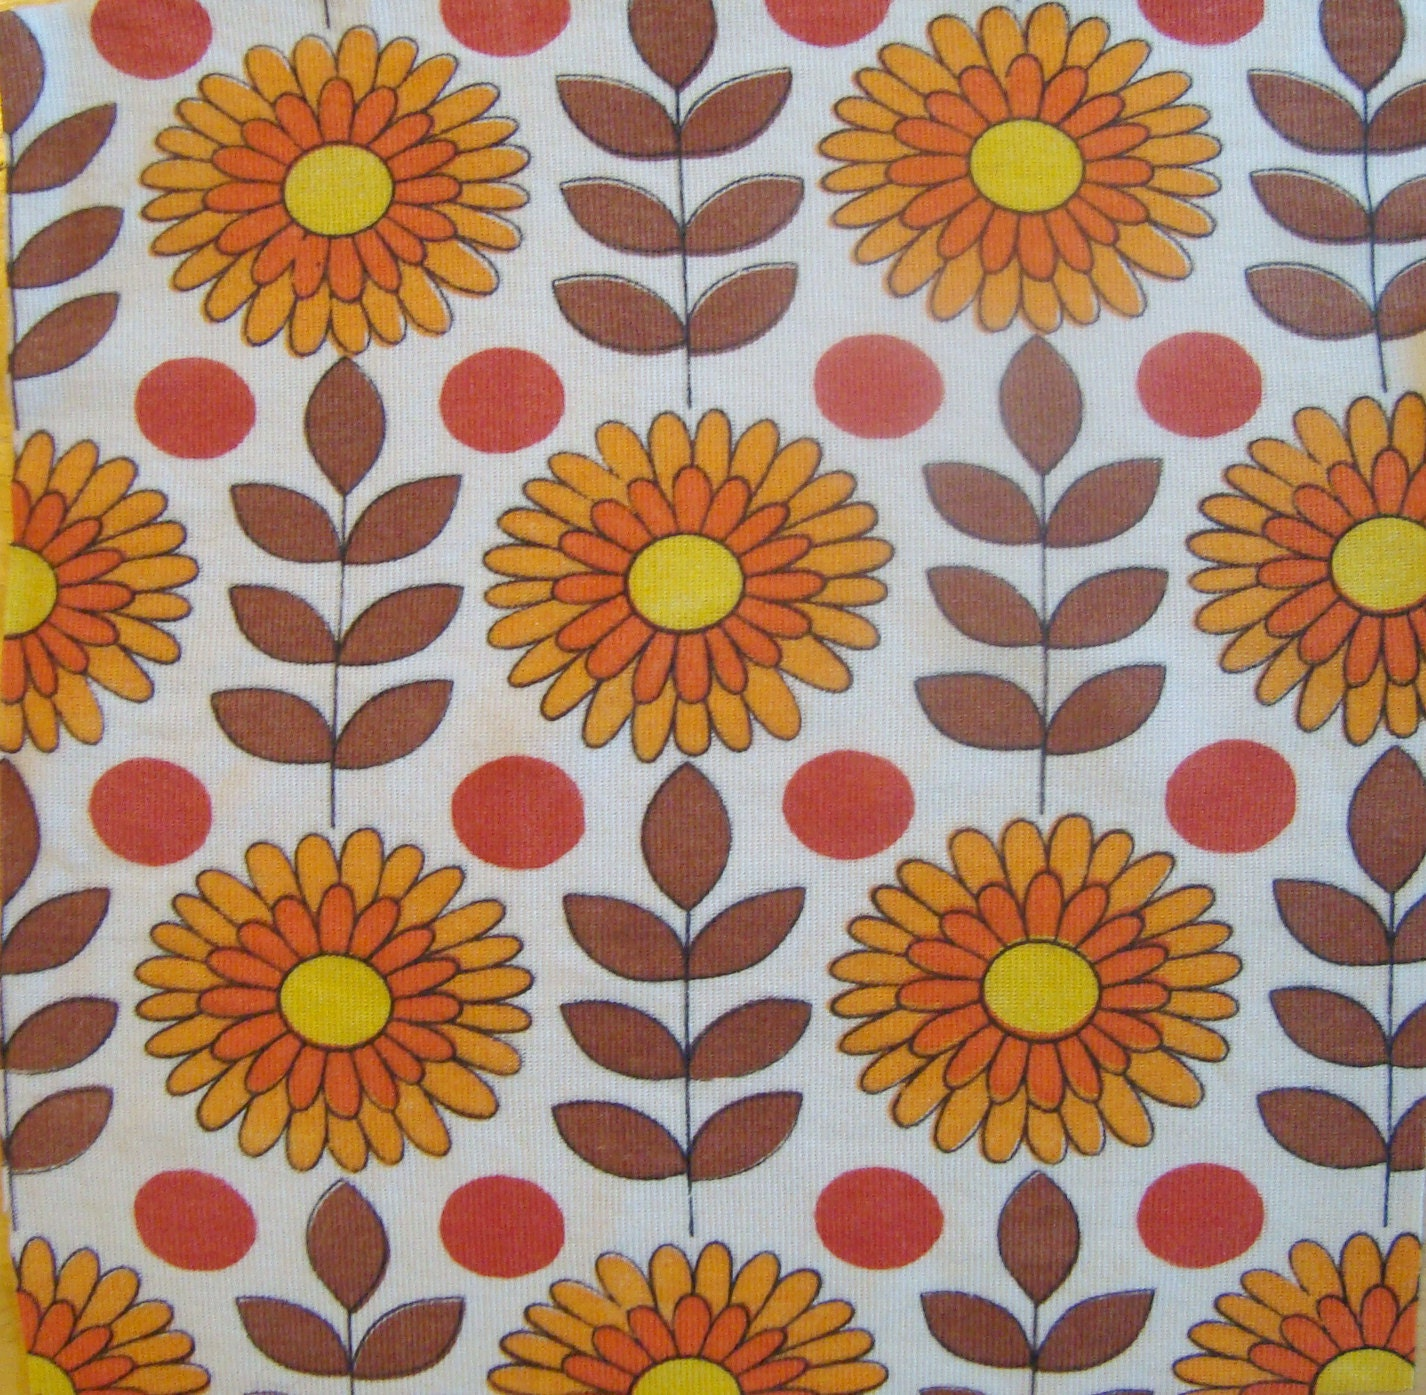 Vintage sunflowers retro fabric remnant for Fabric remnants